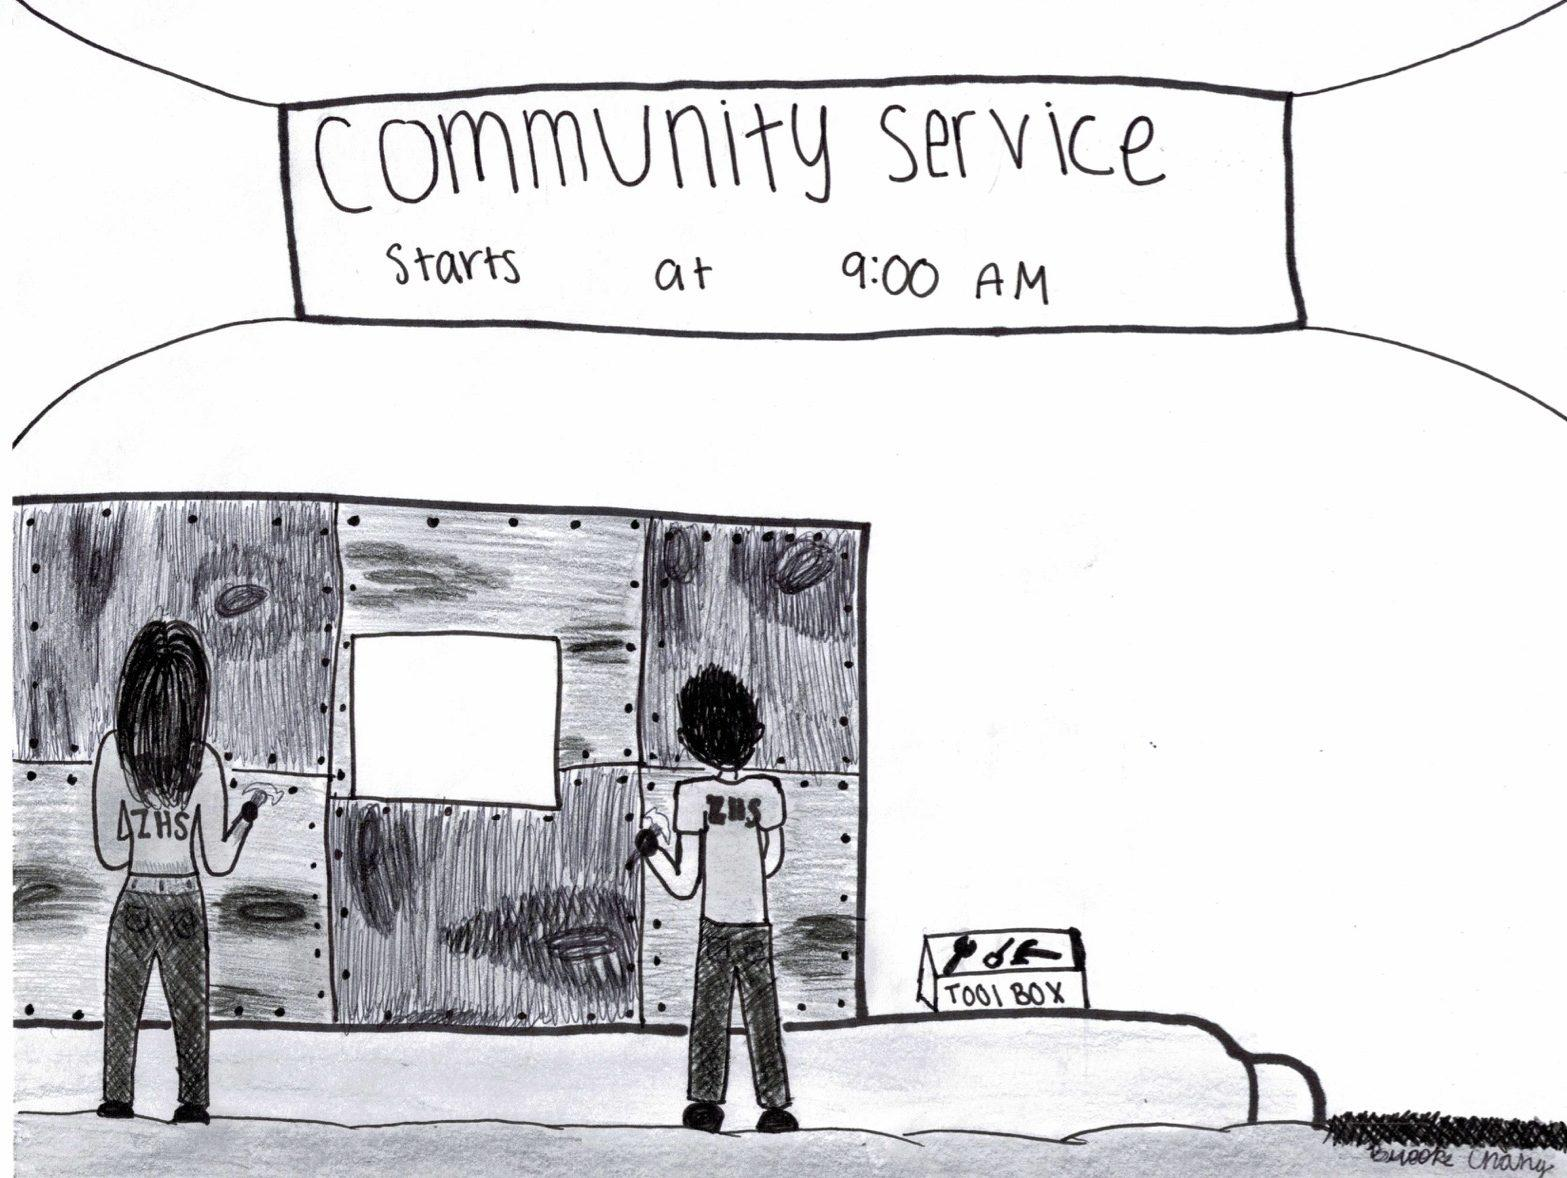 Unlike many other high schools, Carlmont does not require its students to do community service as a graduation requirement.